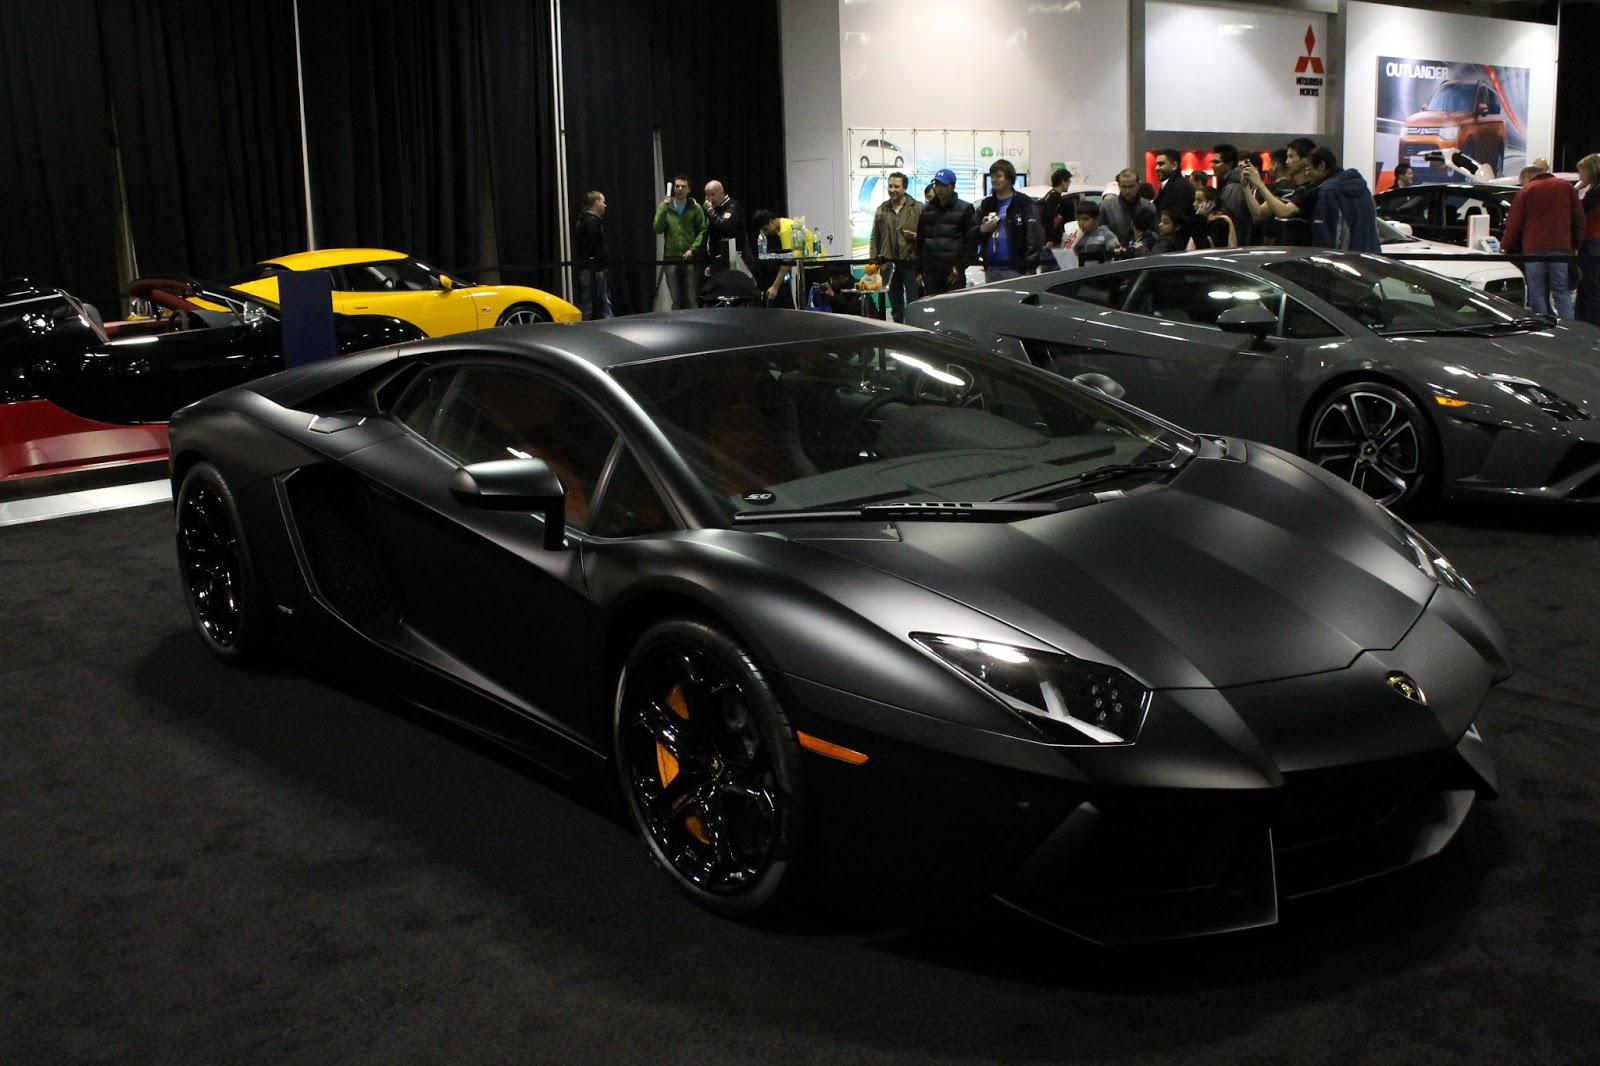 HD wallpapers black and white lamborghini wallpaper